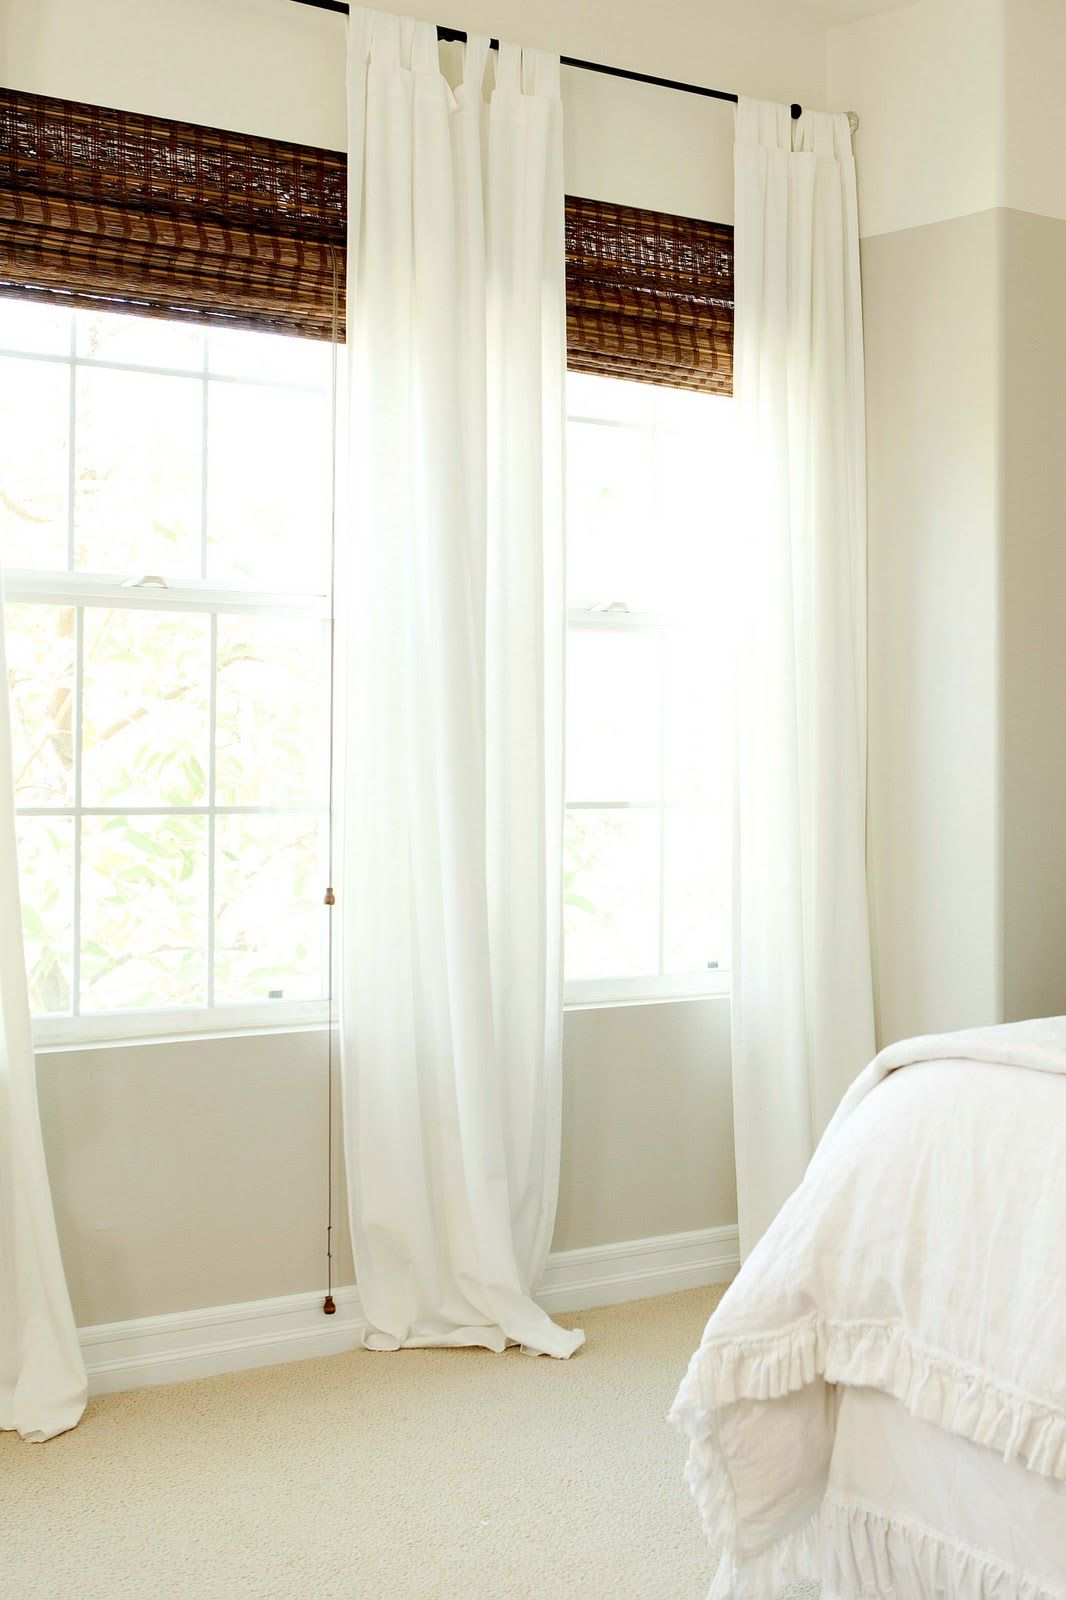 Love White Curtains With These Blinds B E D R O O M Pinterest White Curtains Bedrooms And